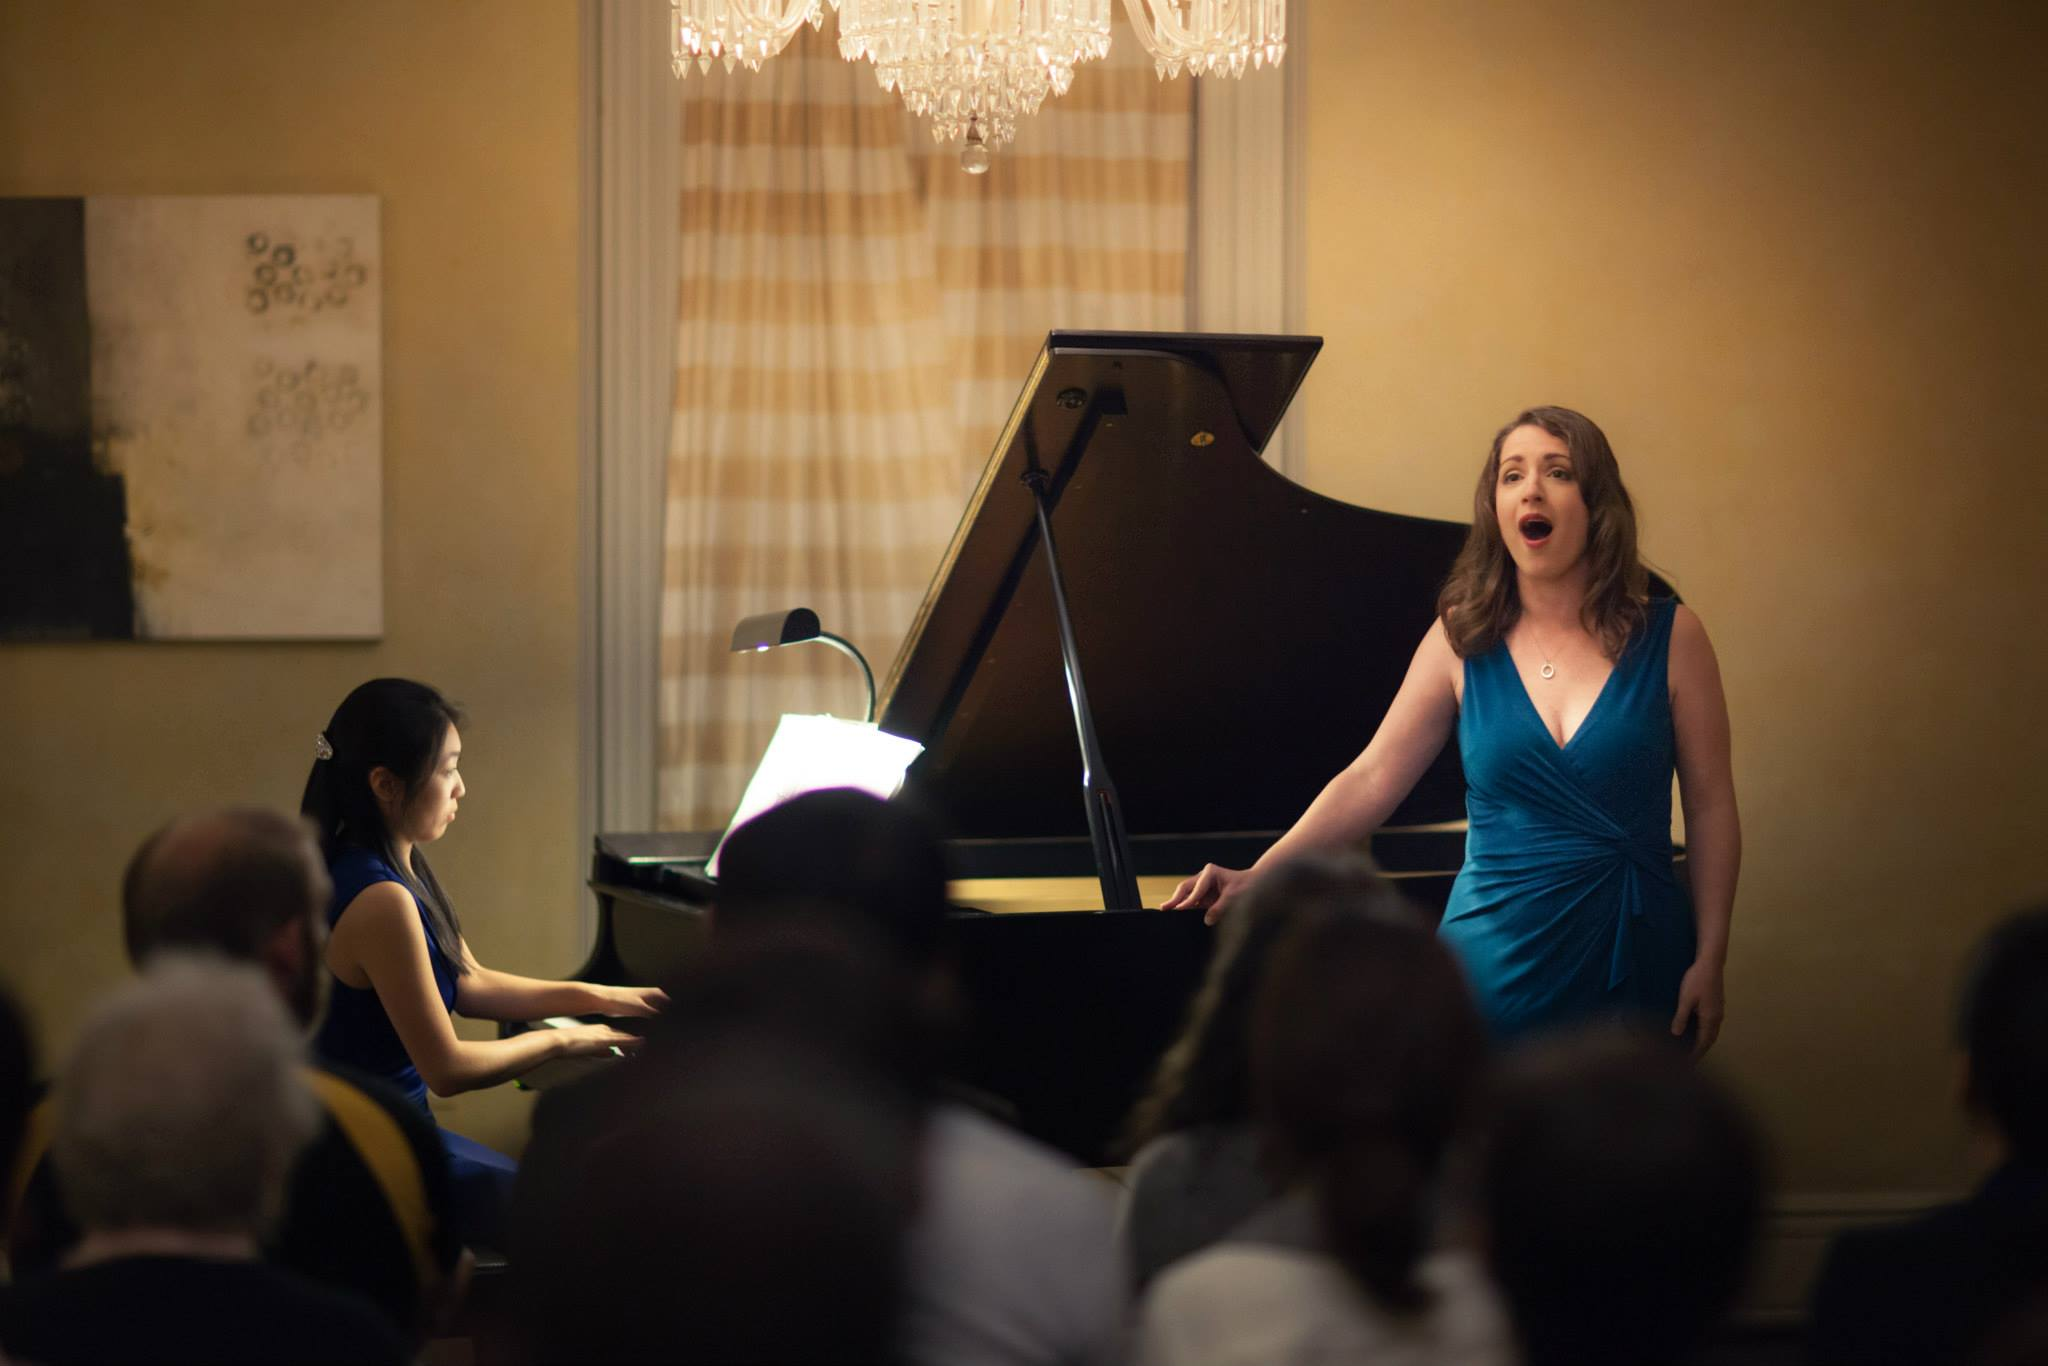 Ms. Worrell performs with pianist Stephanie Mao at the inaugural performance of the Boston Art Song Society.